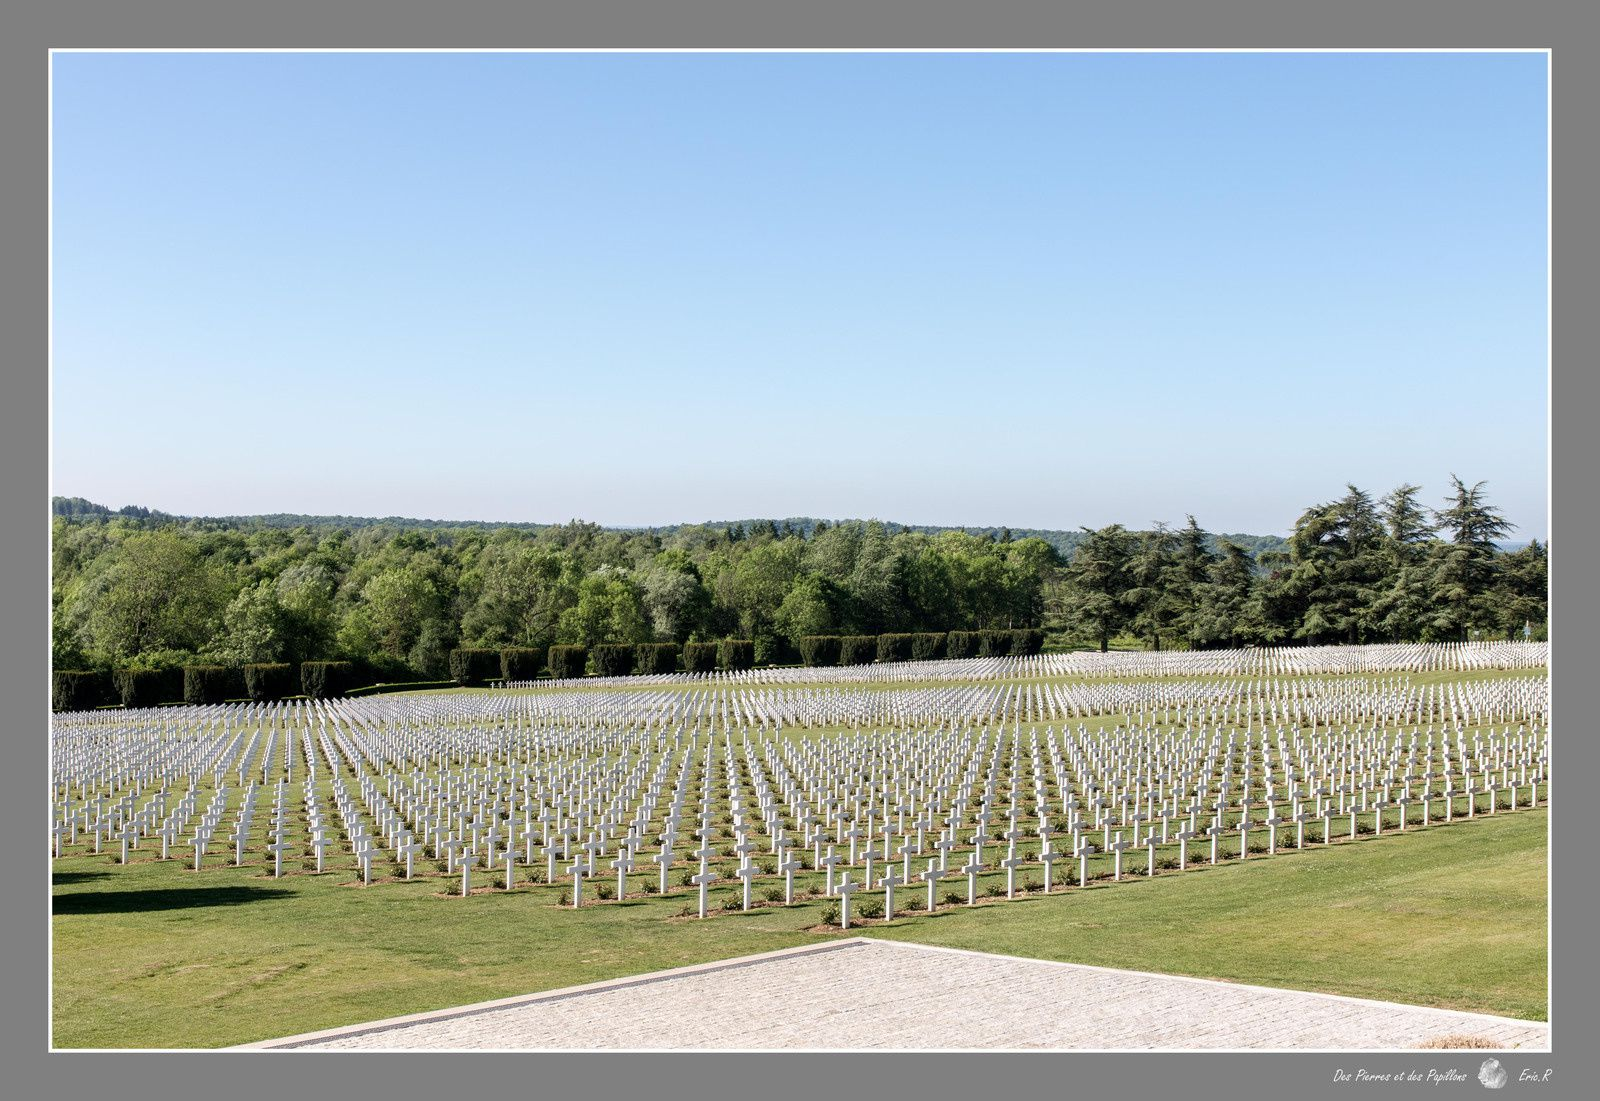 La nécropole nationale de Douaumont